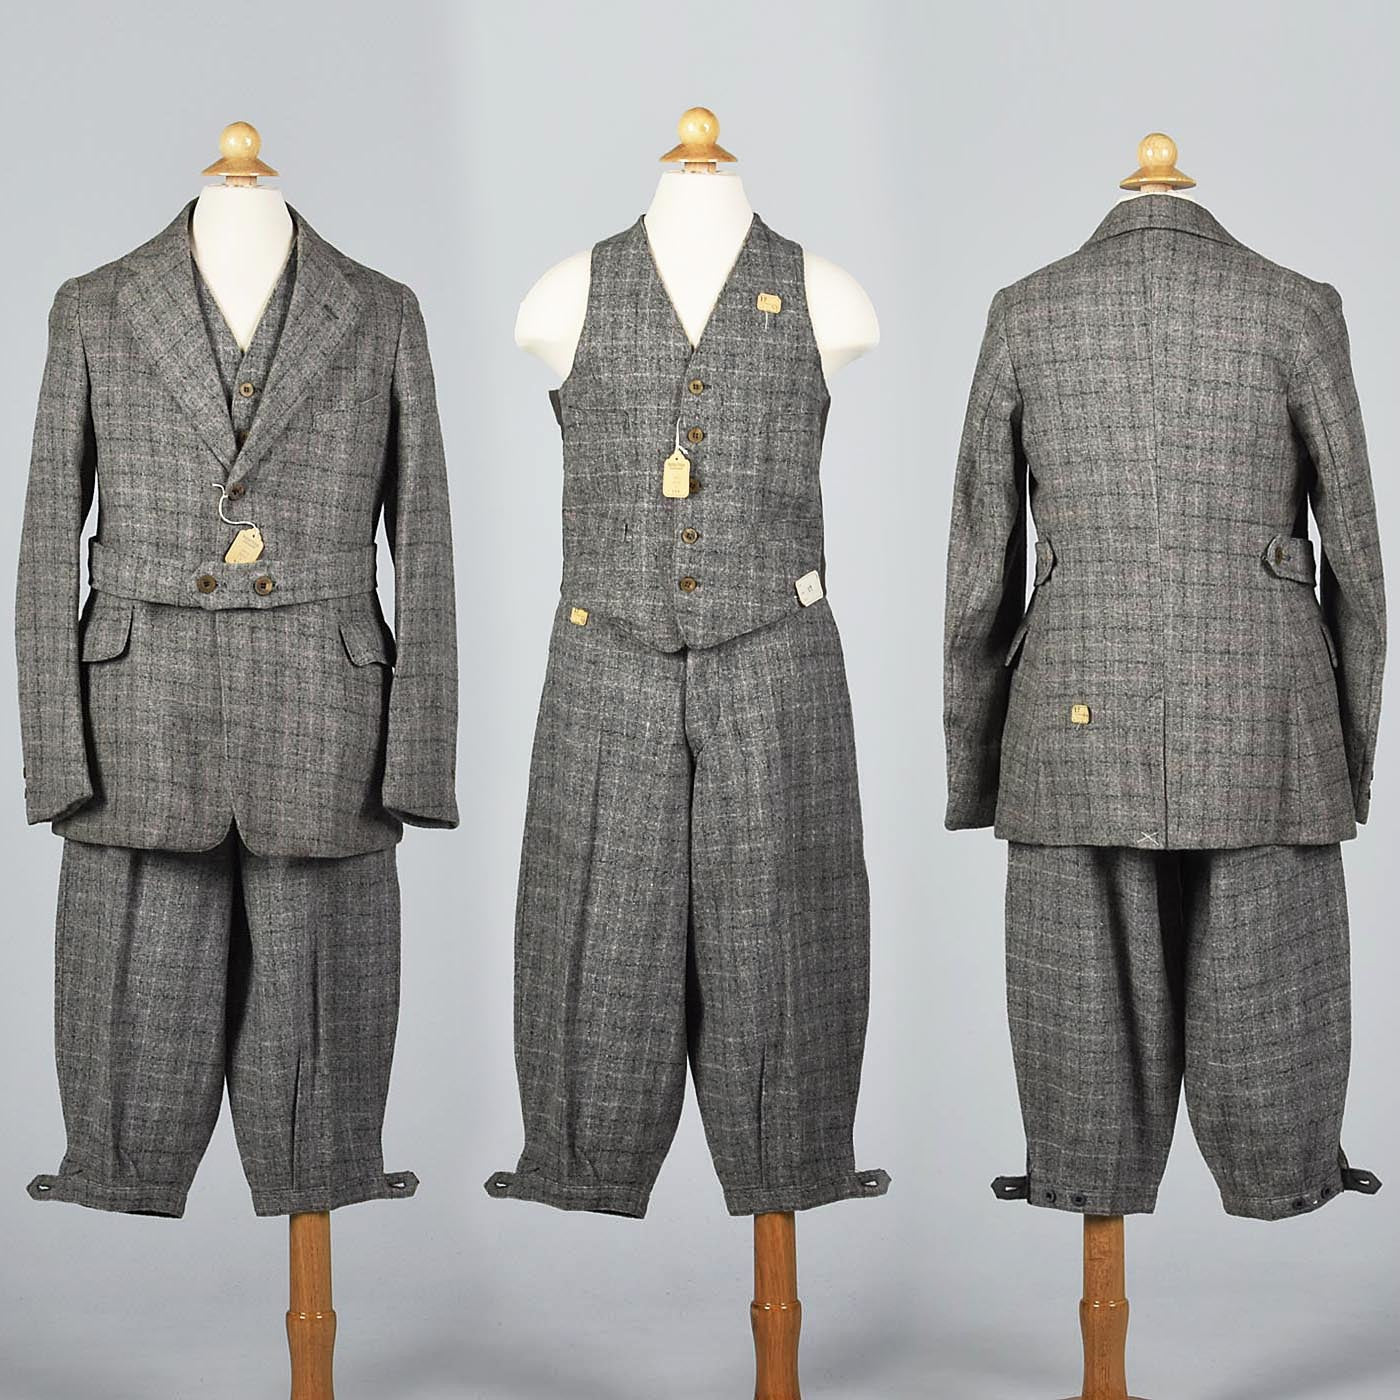 Deadstock 1920s Men's Three Piece  Tweed Suit with Plus Fours in Gray and Purple Plaid